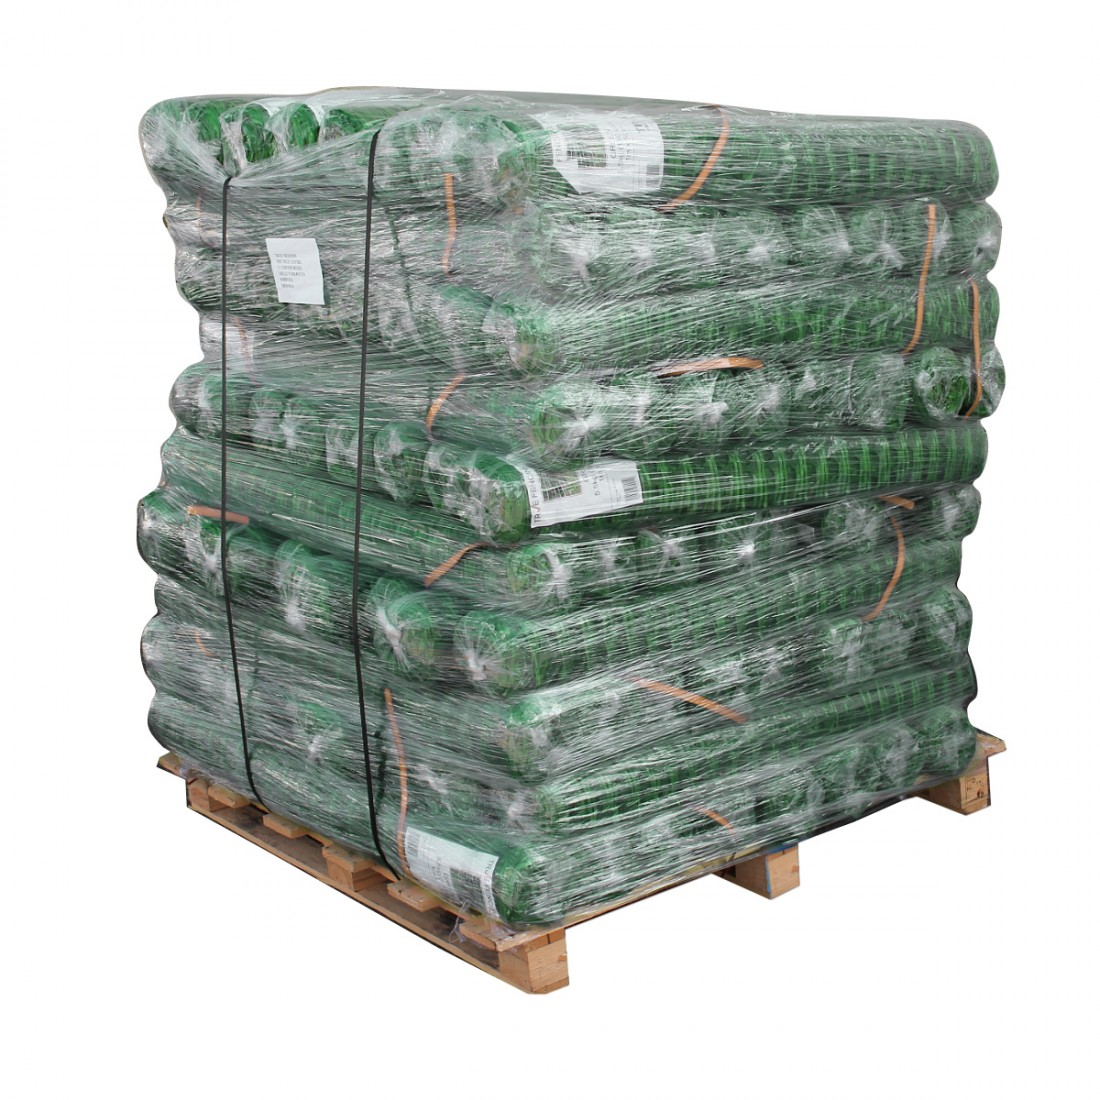 Pallet of Green Barrier Fence